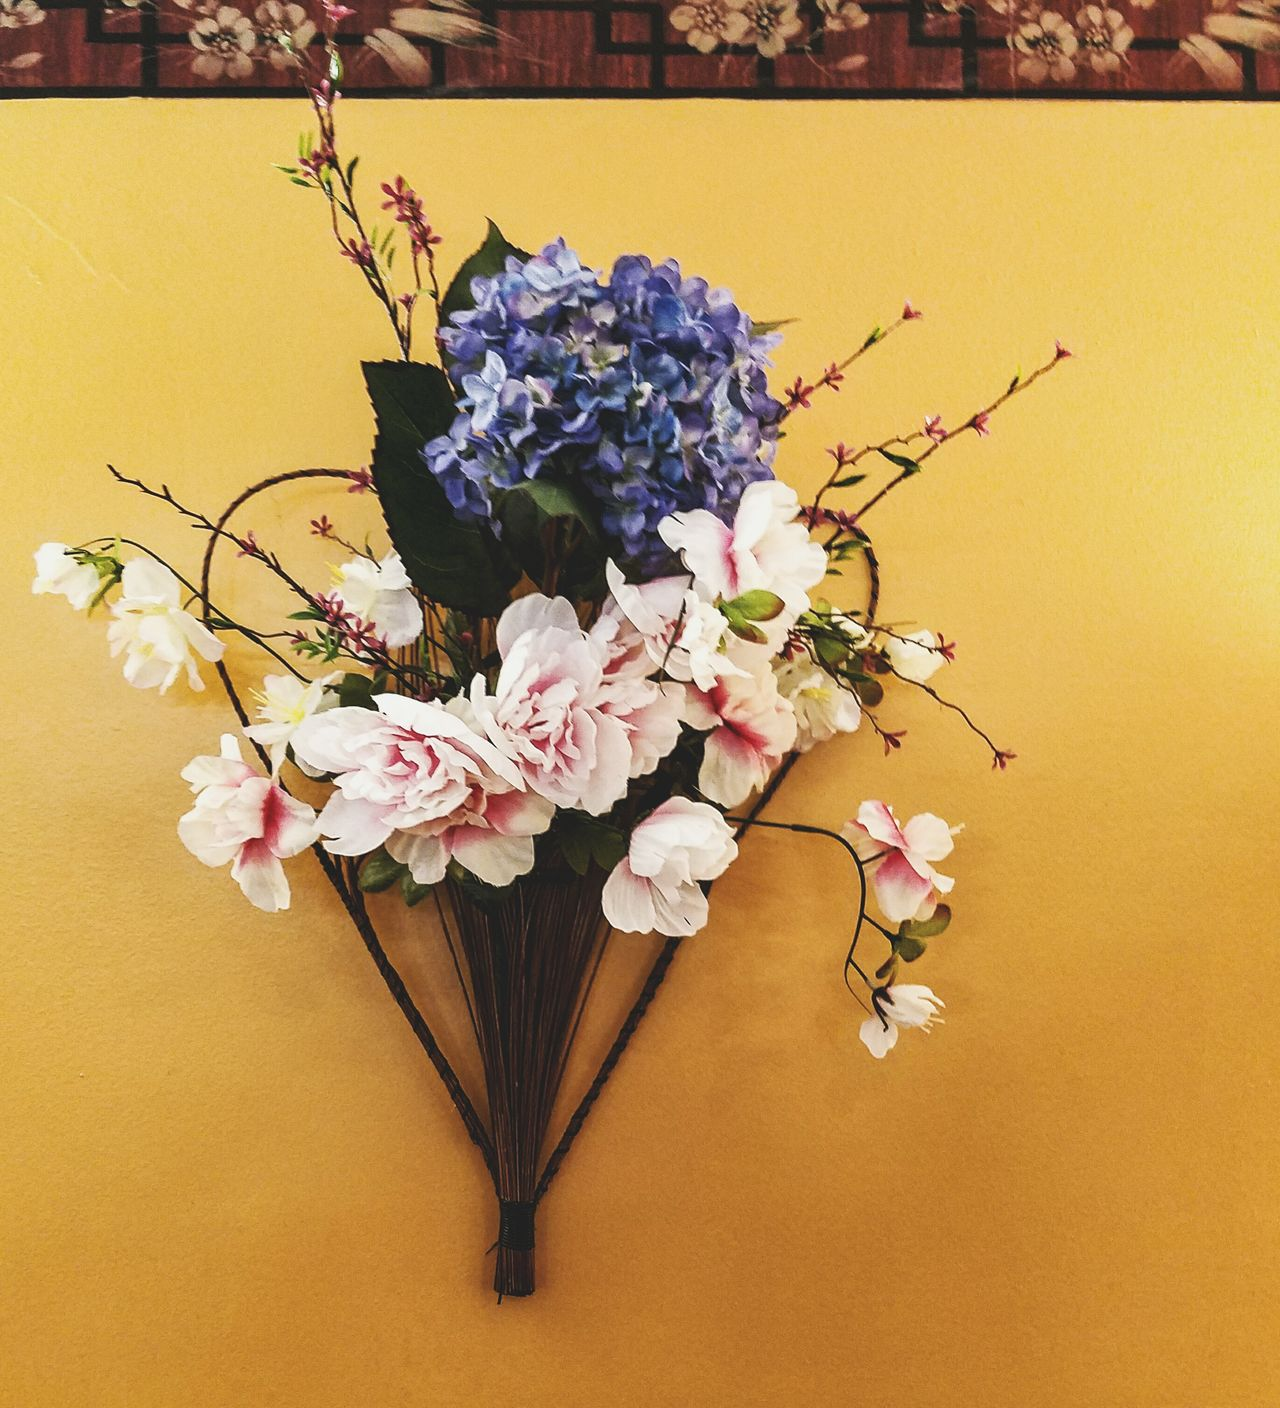 Flower No People Plant Bouquet Flower Head Freshness Day Hanging Flowers Fake Flowers Wallpaper Yellow Yellow Wall White Flowers Blue Flowers Pink Flowers Mn Flower Decoration China Star Buffet Wooden Heart Colorful Design Ideas For.... Restaurant Fancy Floral Arrangement